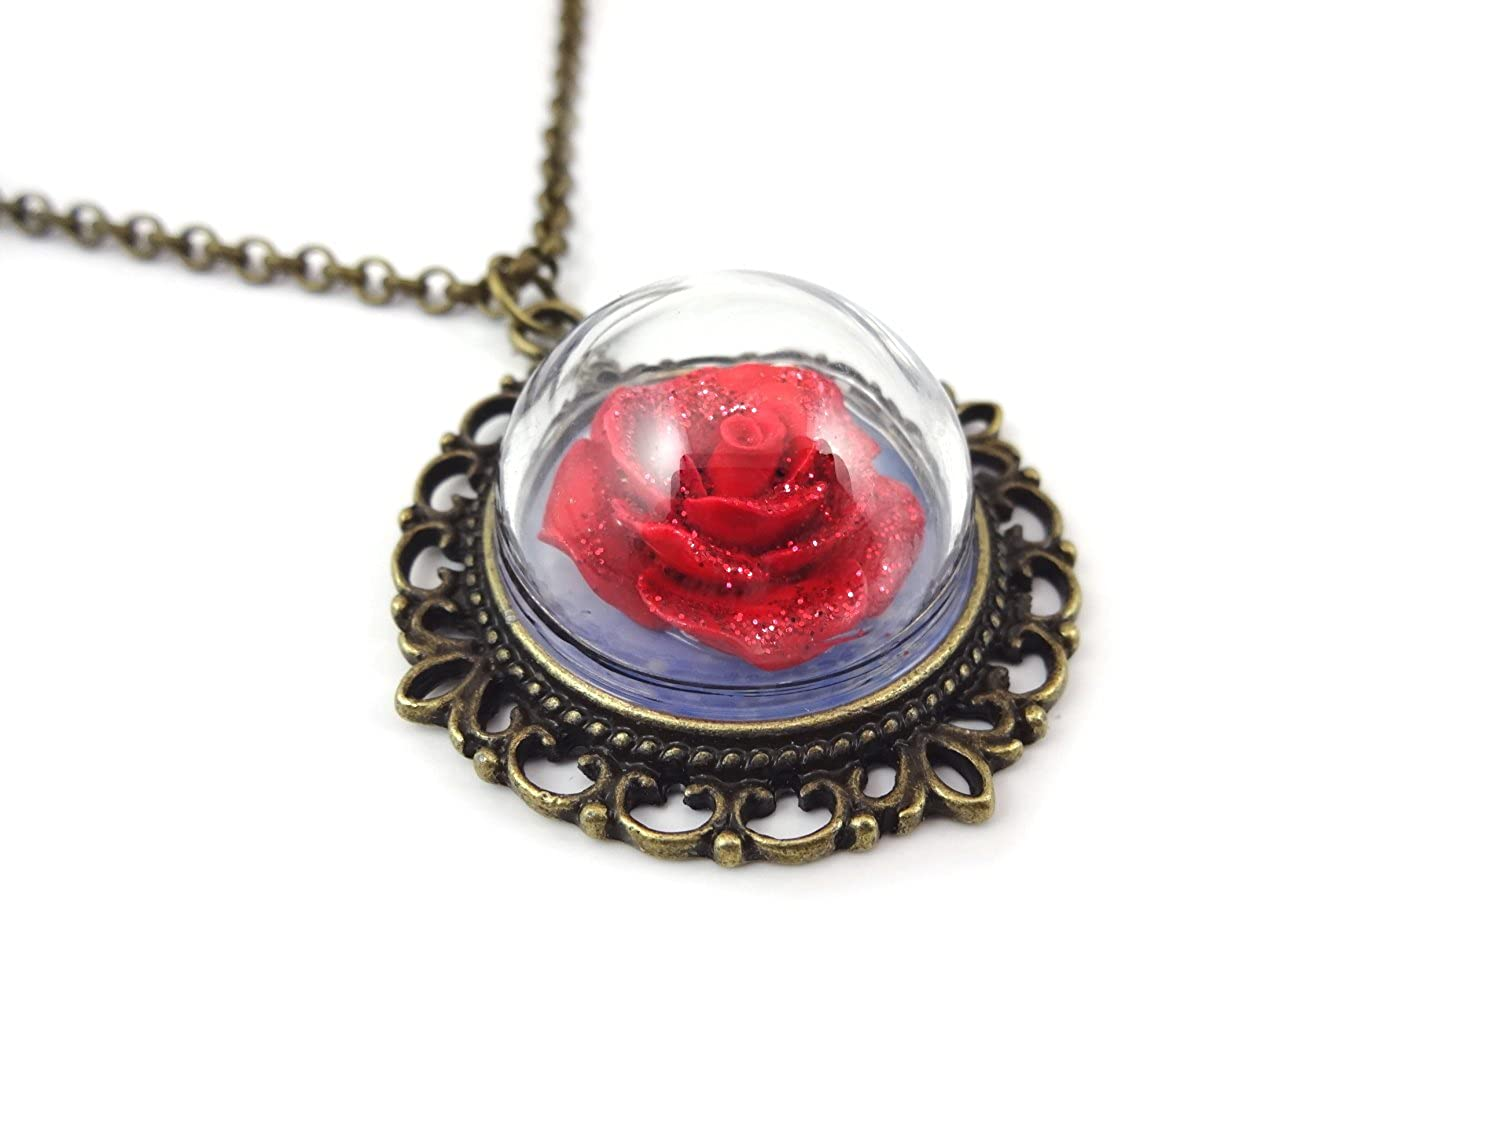 Amazon beauty and the beast enchanted red rose glass dome amazon beauty and the beast enchanted red rose glass dome bronze necklace 20 in fairy tale wedding jewelry jewelry mozeypictures Choice Image